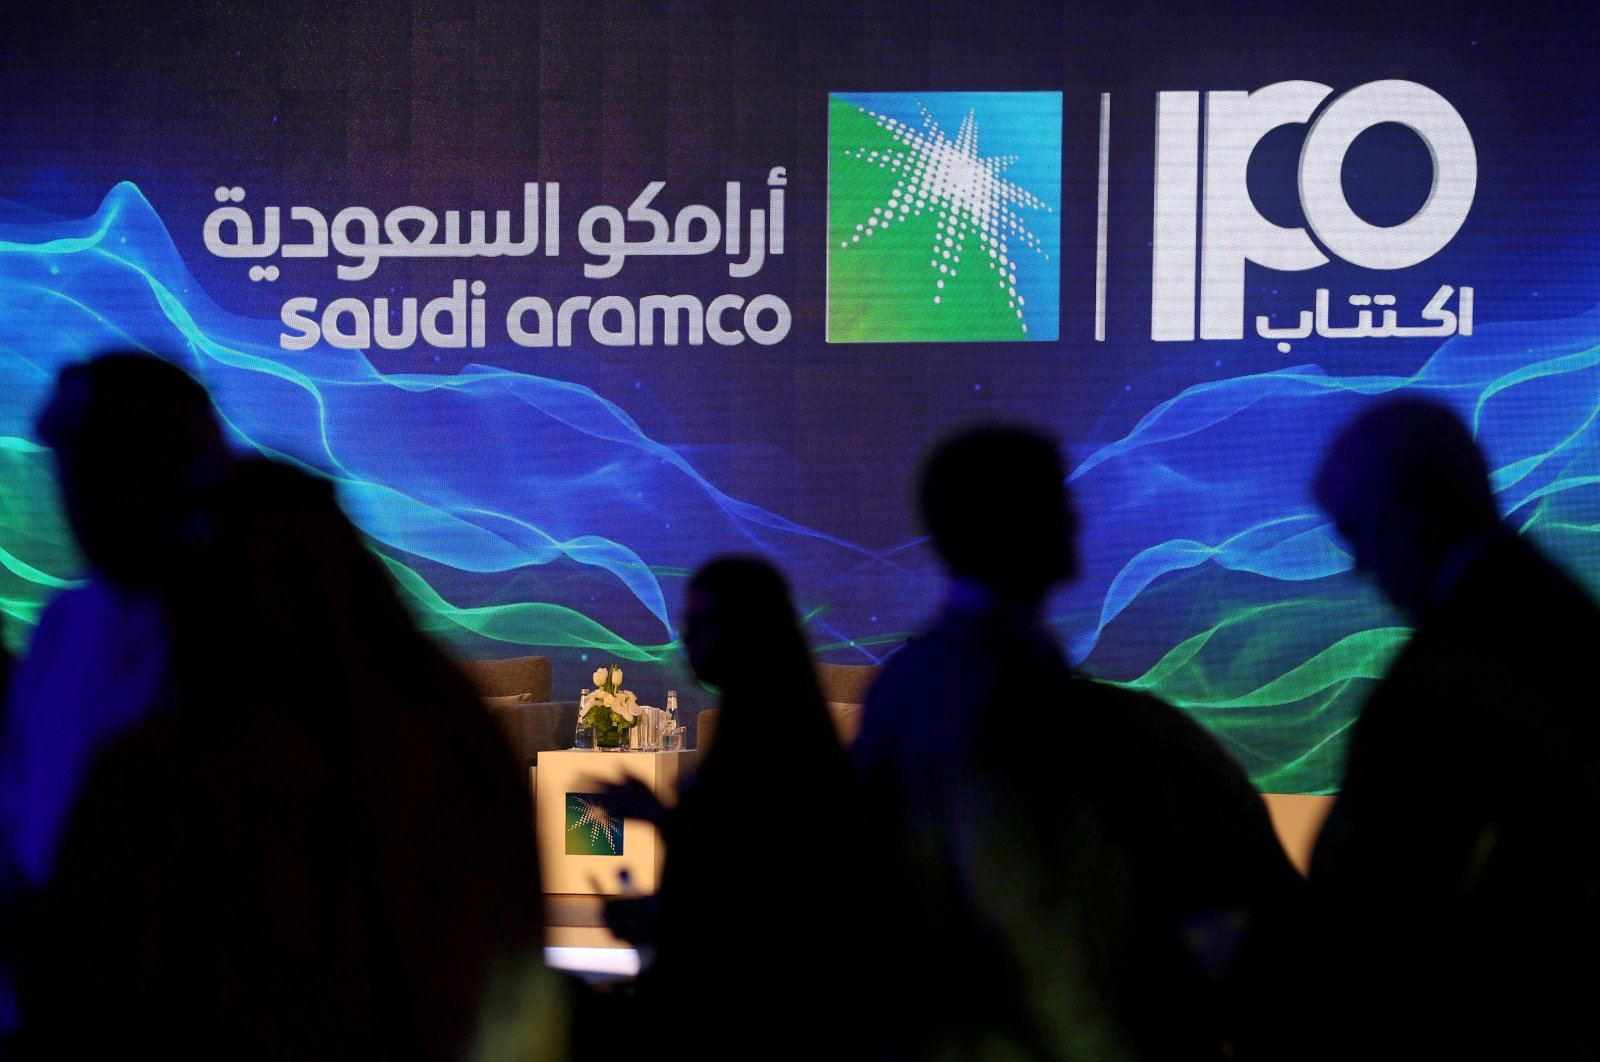 The logo of Saudi Aramco's initial public offering (IPO) is seen during a news conference by the state oil company at the Plaza Conference Center in Dhahran, Saudi Arabia Nov. 3, 2019. (Reuters Photo)